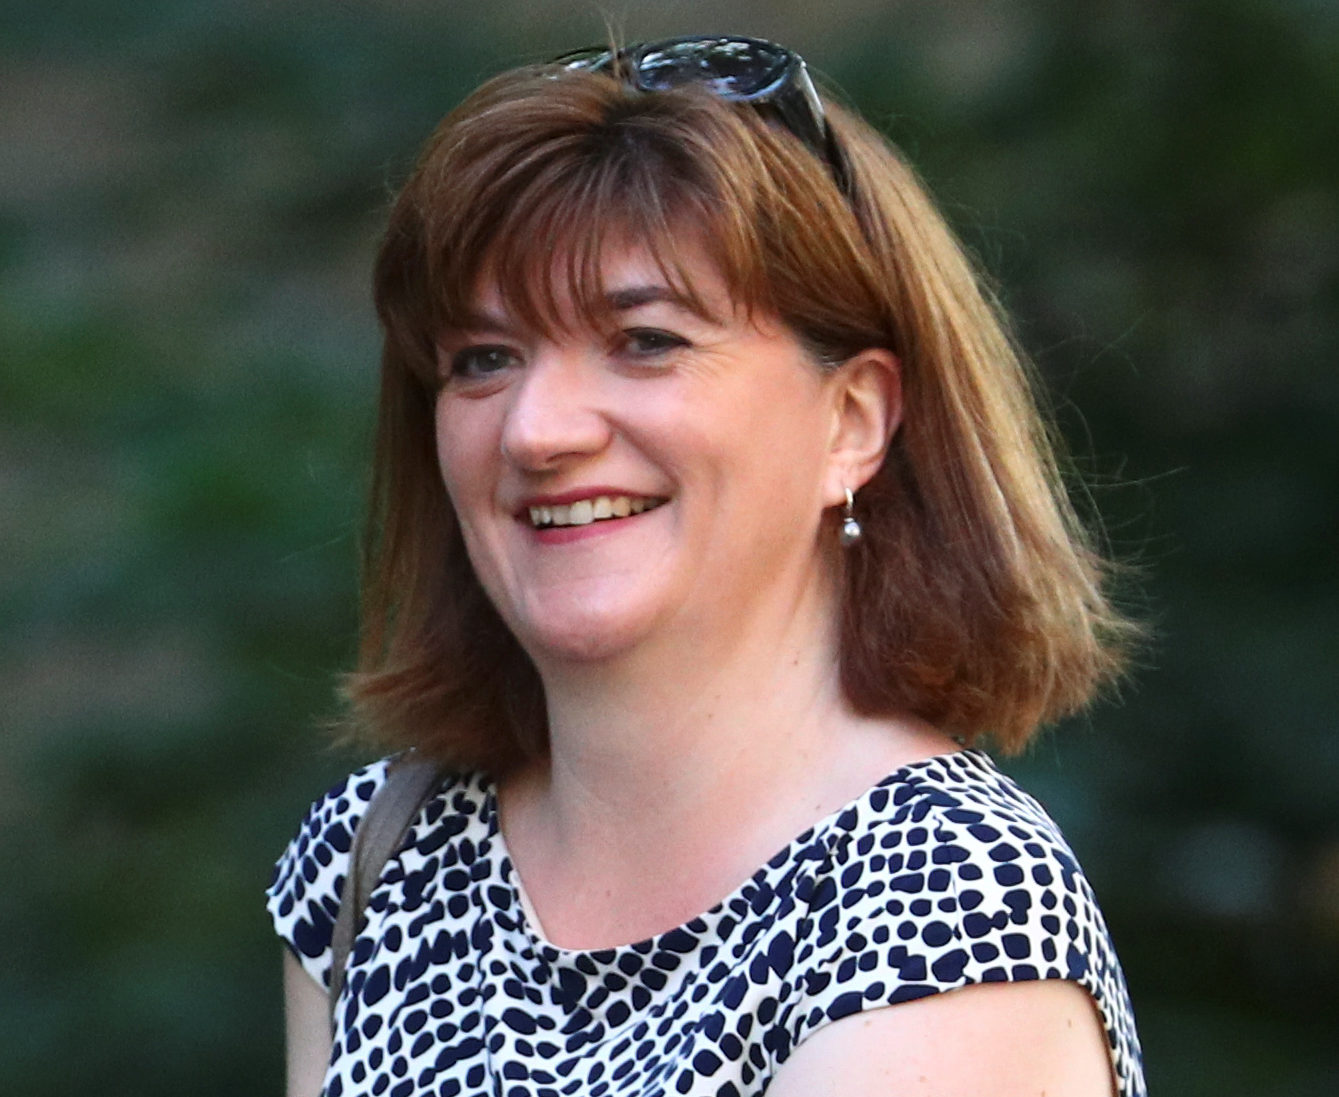 Newly appointed Secretary of State for Digital, Culture, Media and Sport, Nicky Morgan, is seen outside Downing Street in London